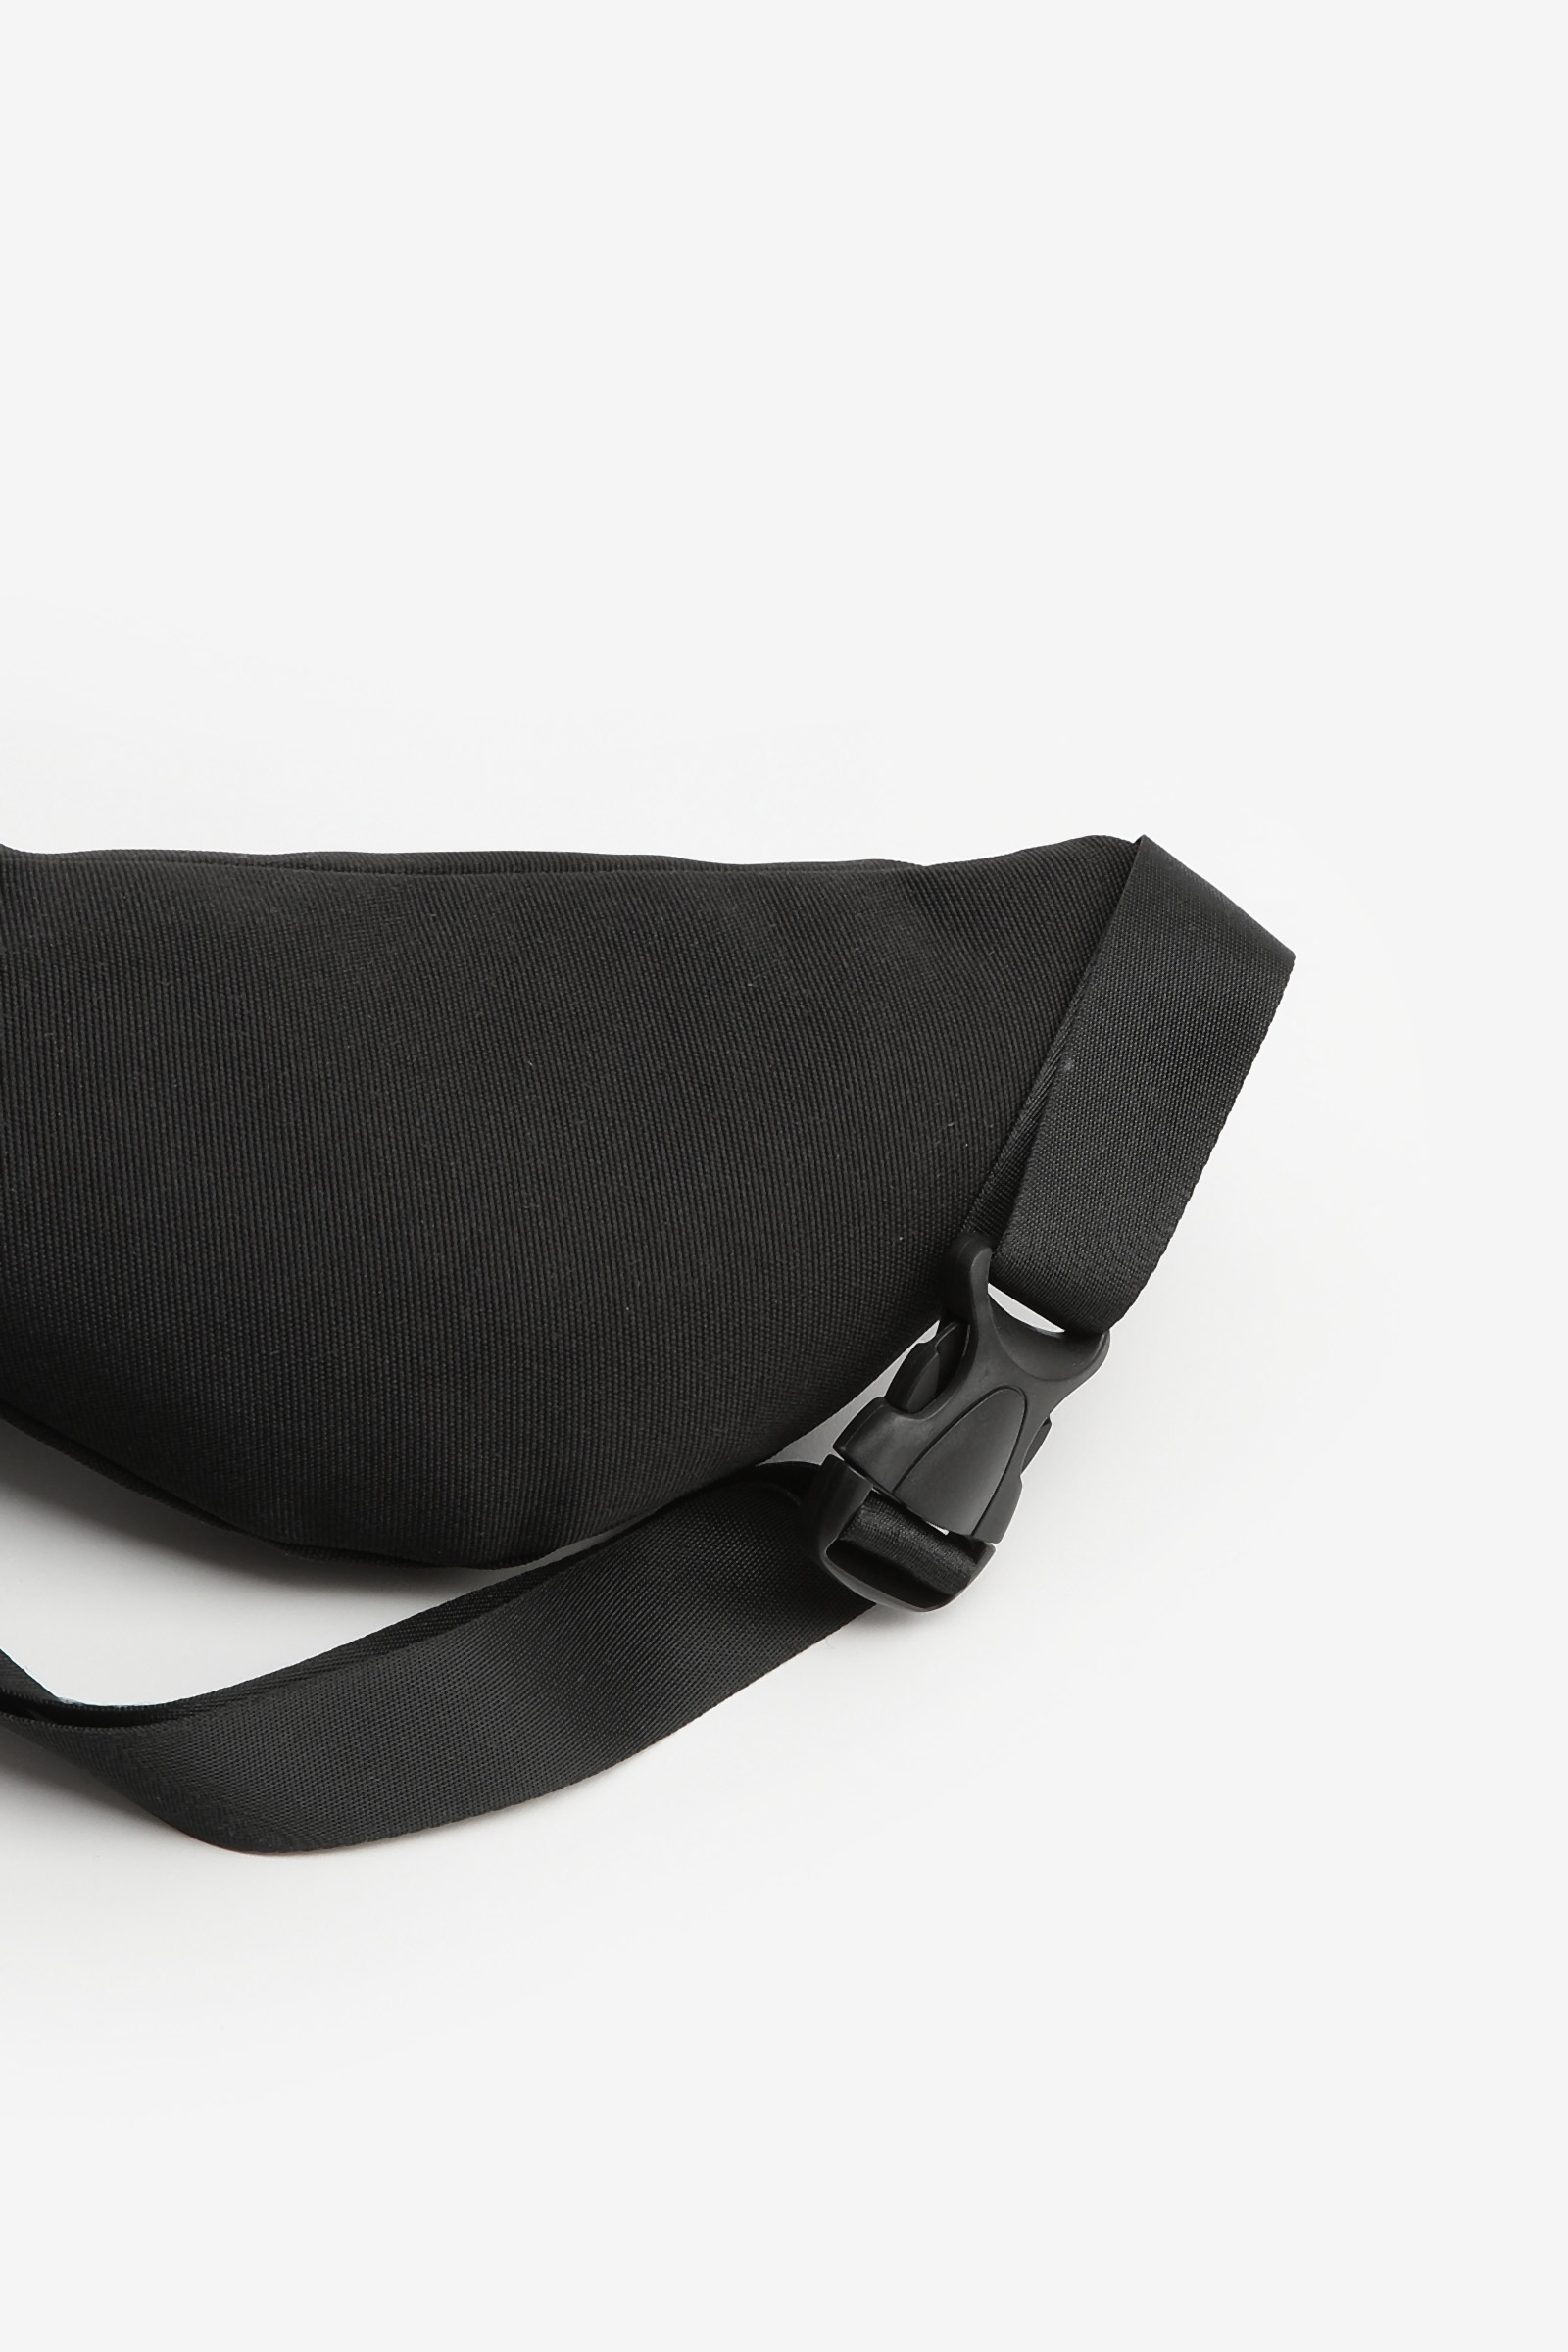 Future is Female Fanny Pack